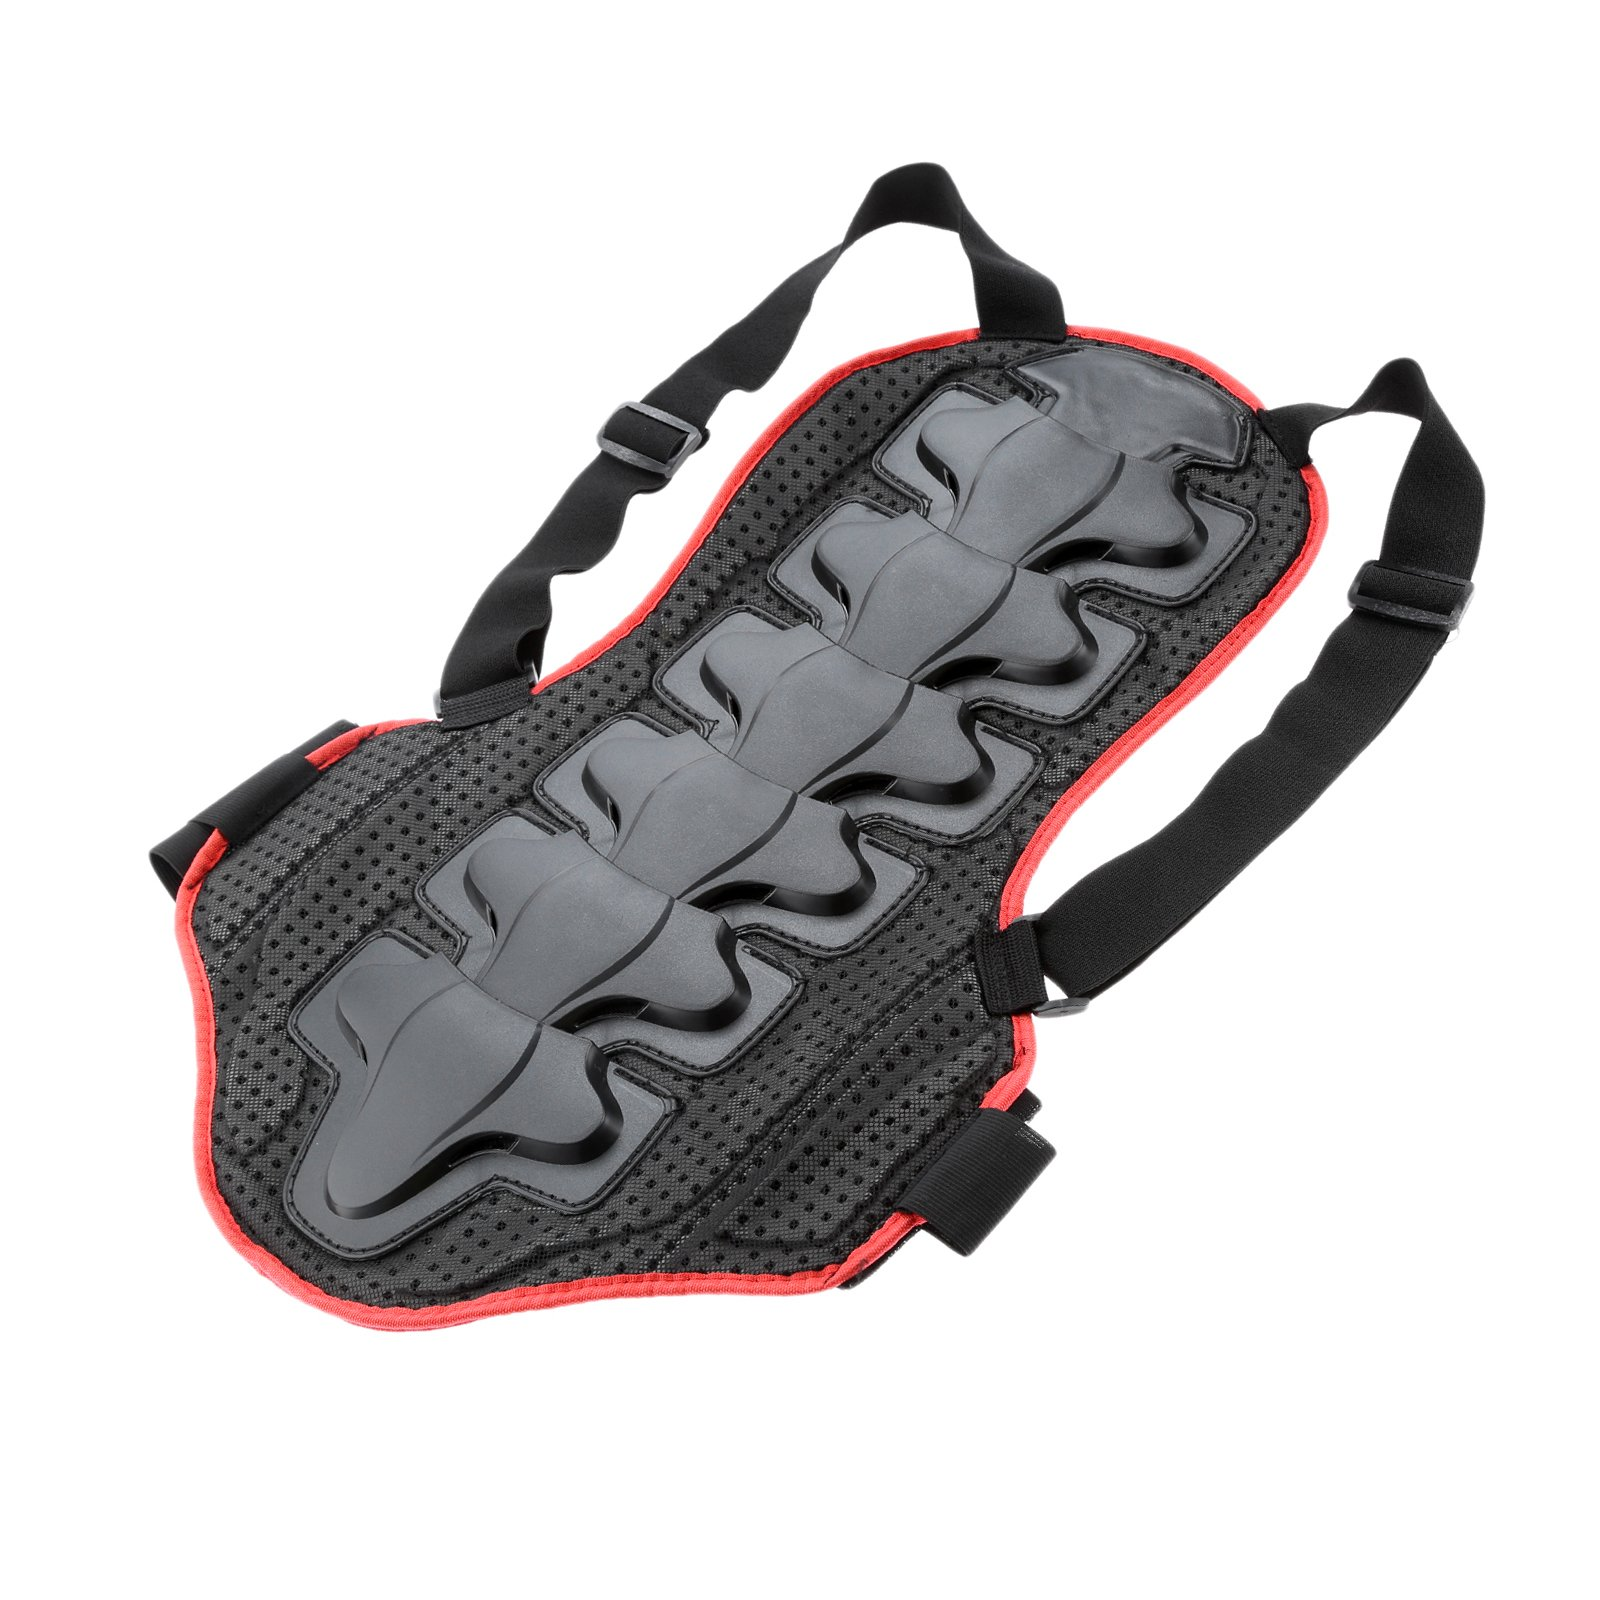 Bikers Gear Australia CE1621-2 Approved Spine Back Protector for Motorcycle Skiing Snowboarding Black, Small